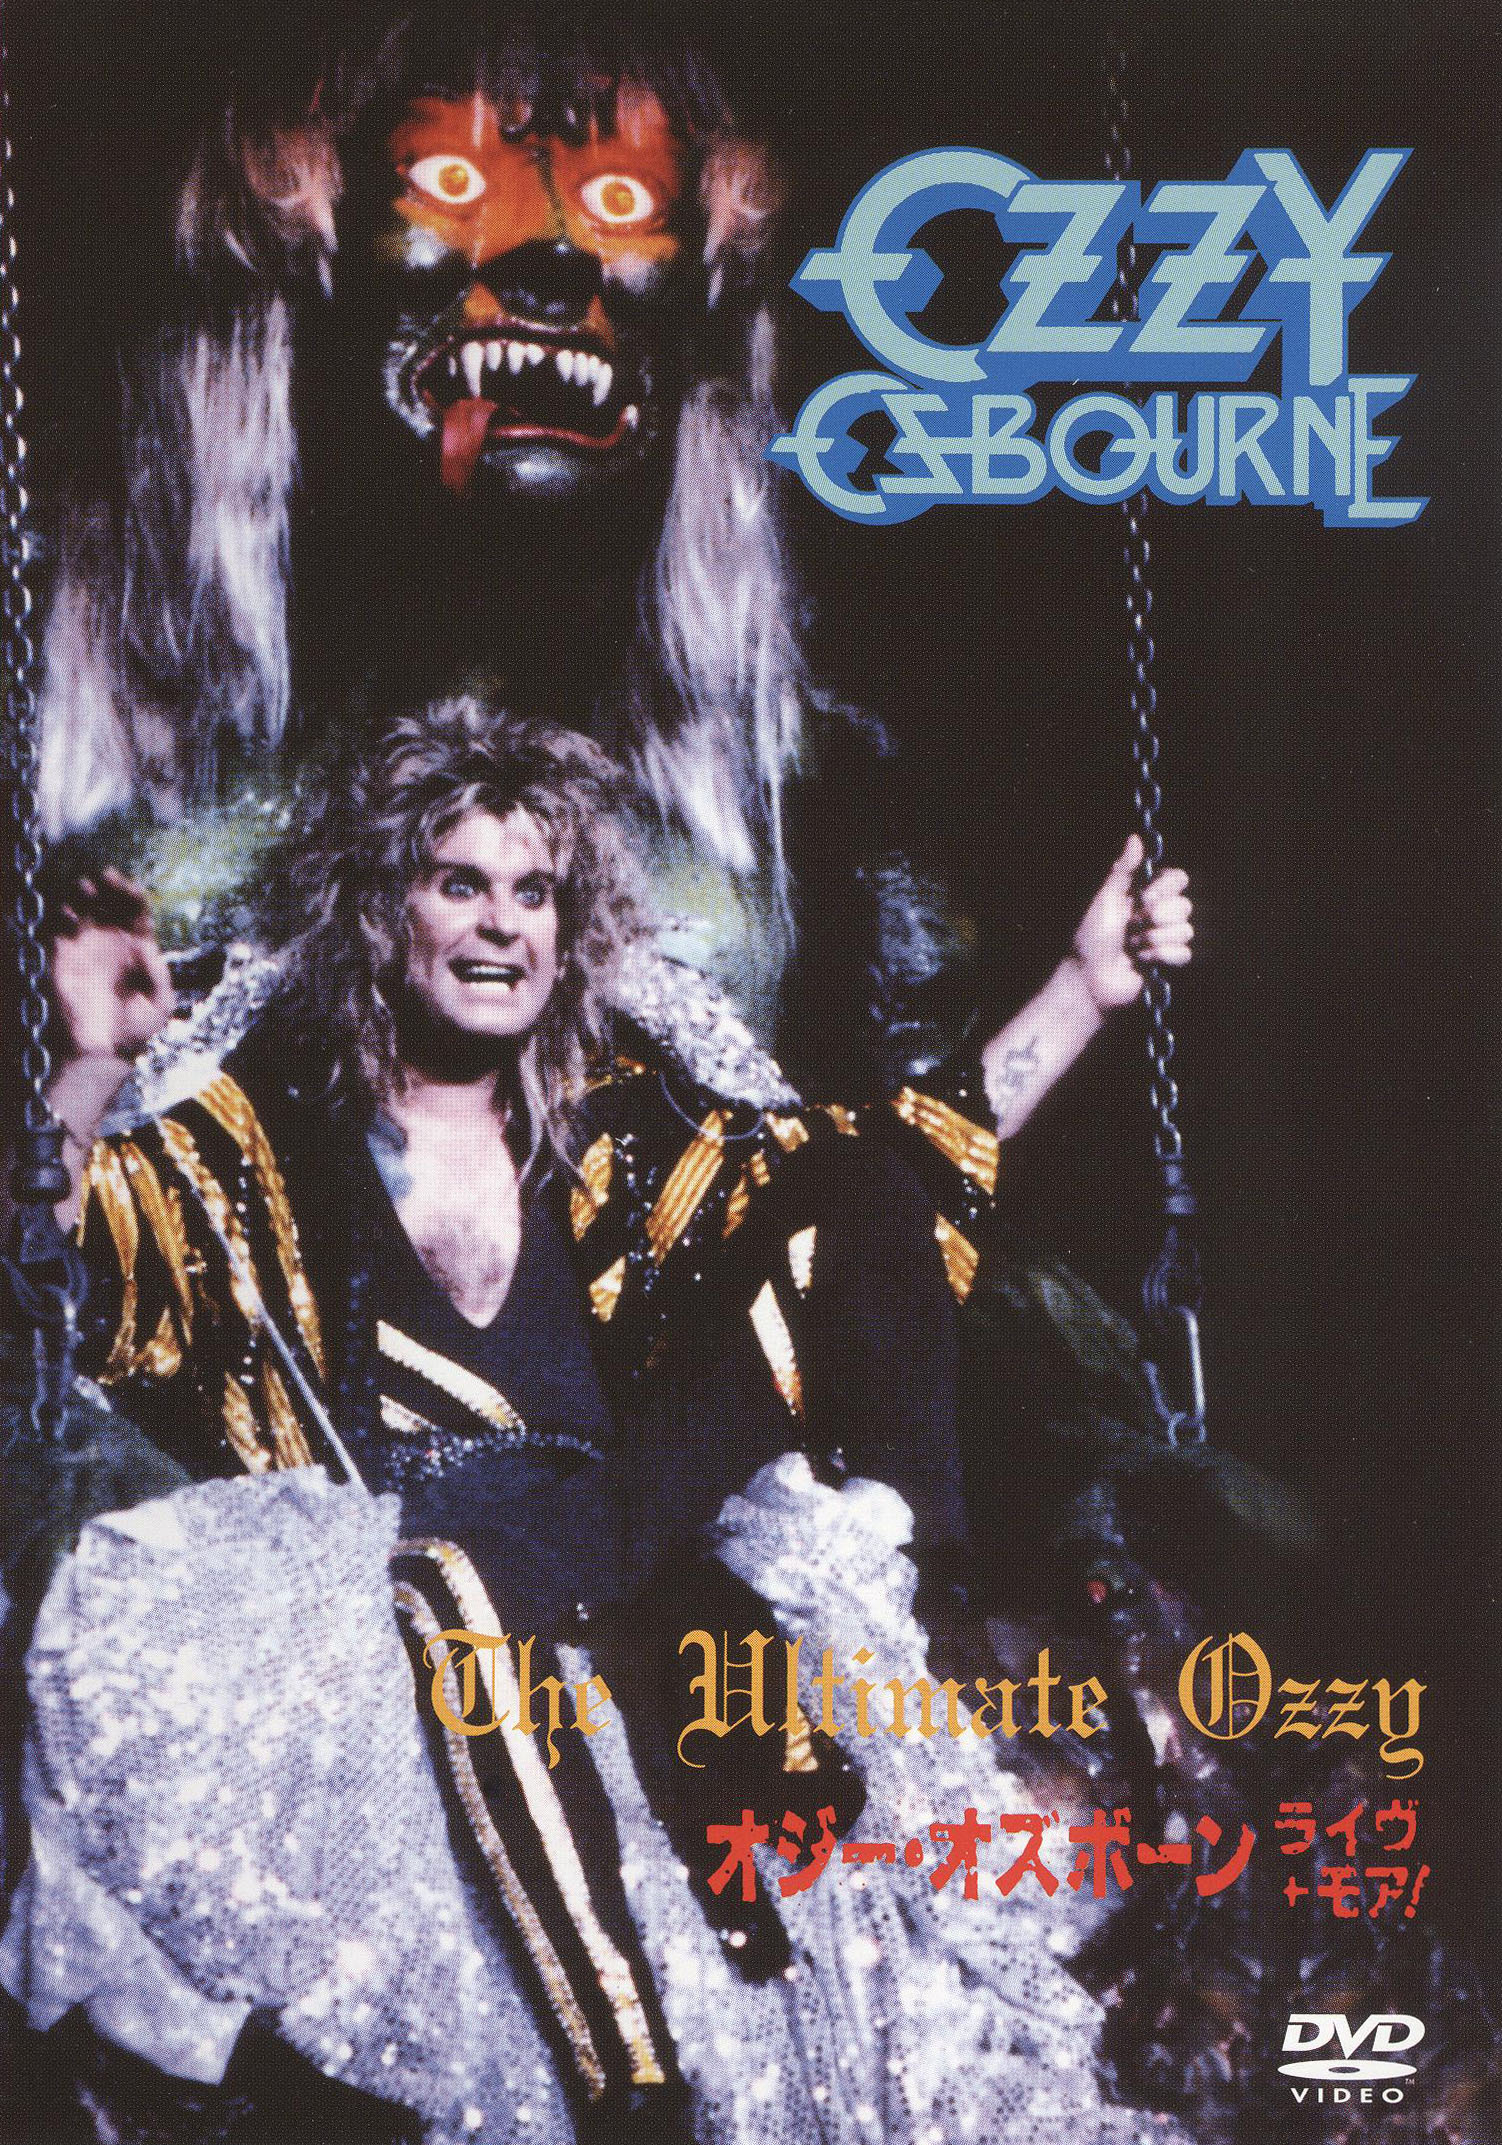 Ozzy Osbourne: The Ultimate Ozzy